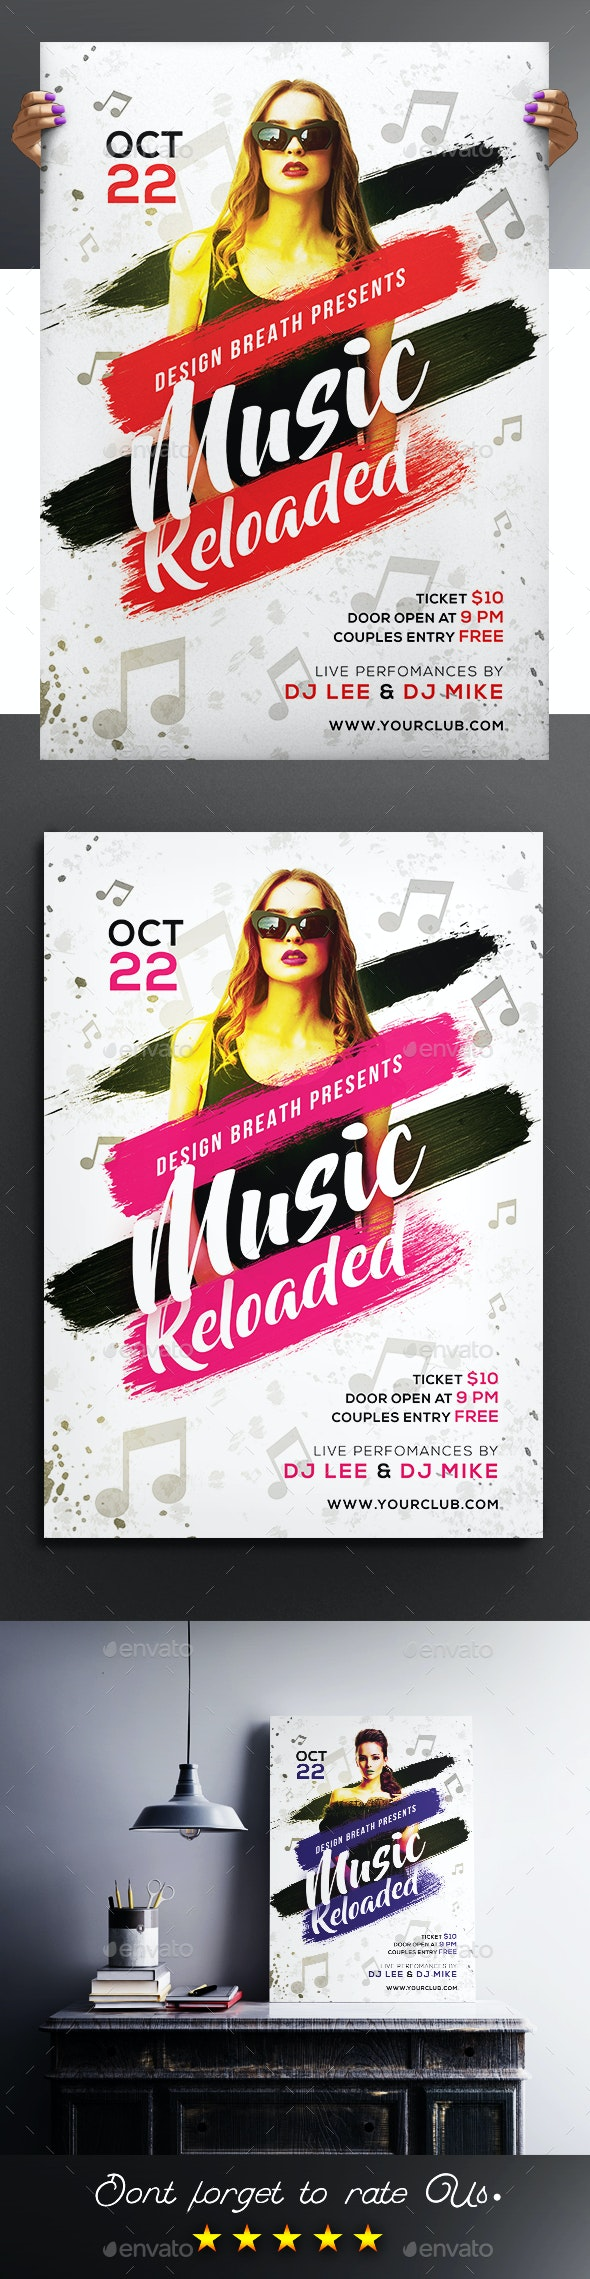 Music Reloaded Party Flyer / Poster - Clubs & Parties Events